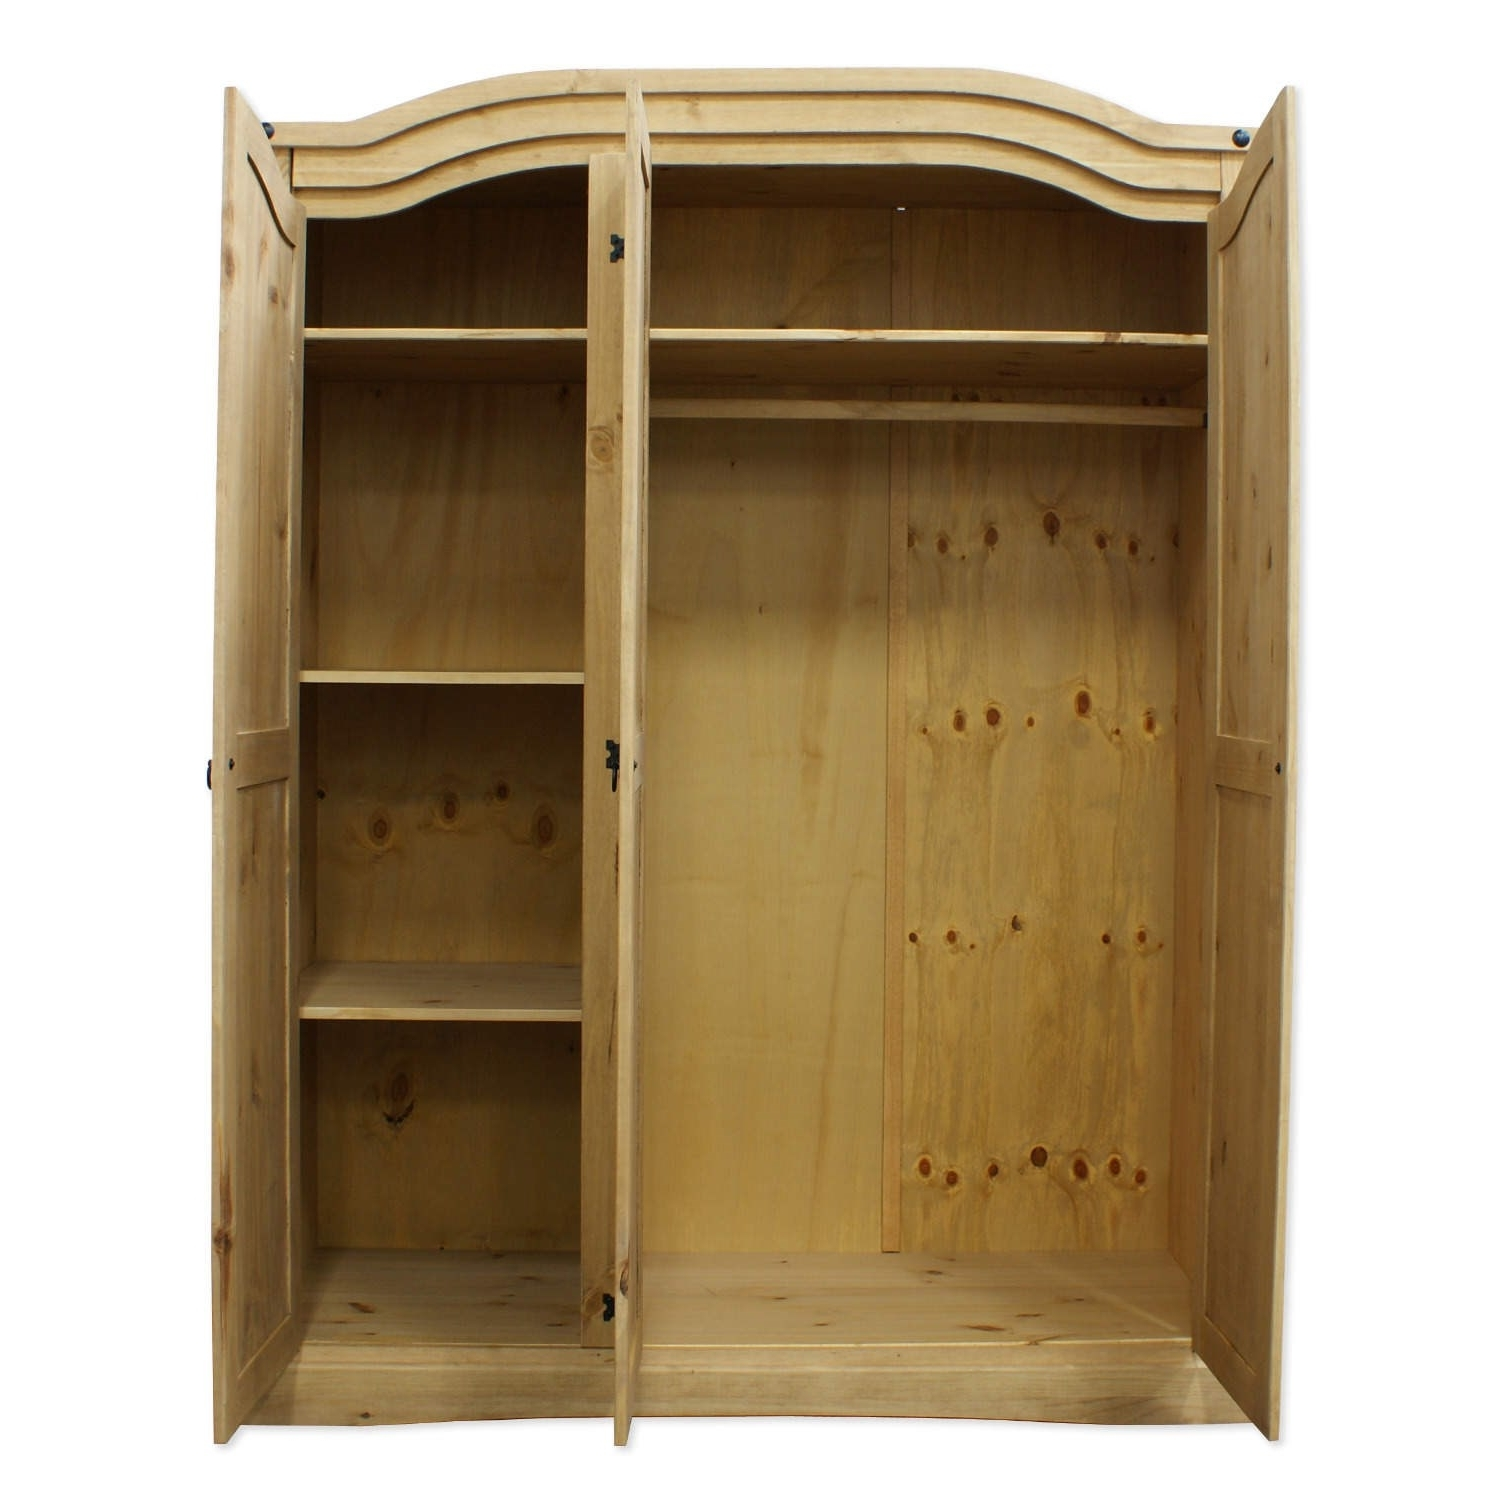 Best And Newest Mexican Rustic Solid Wooden Pine Corona 3 Door Wardrobe + Shelves Intended For Corona 3 Door Wardrobes (View 3 of 15)